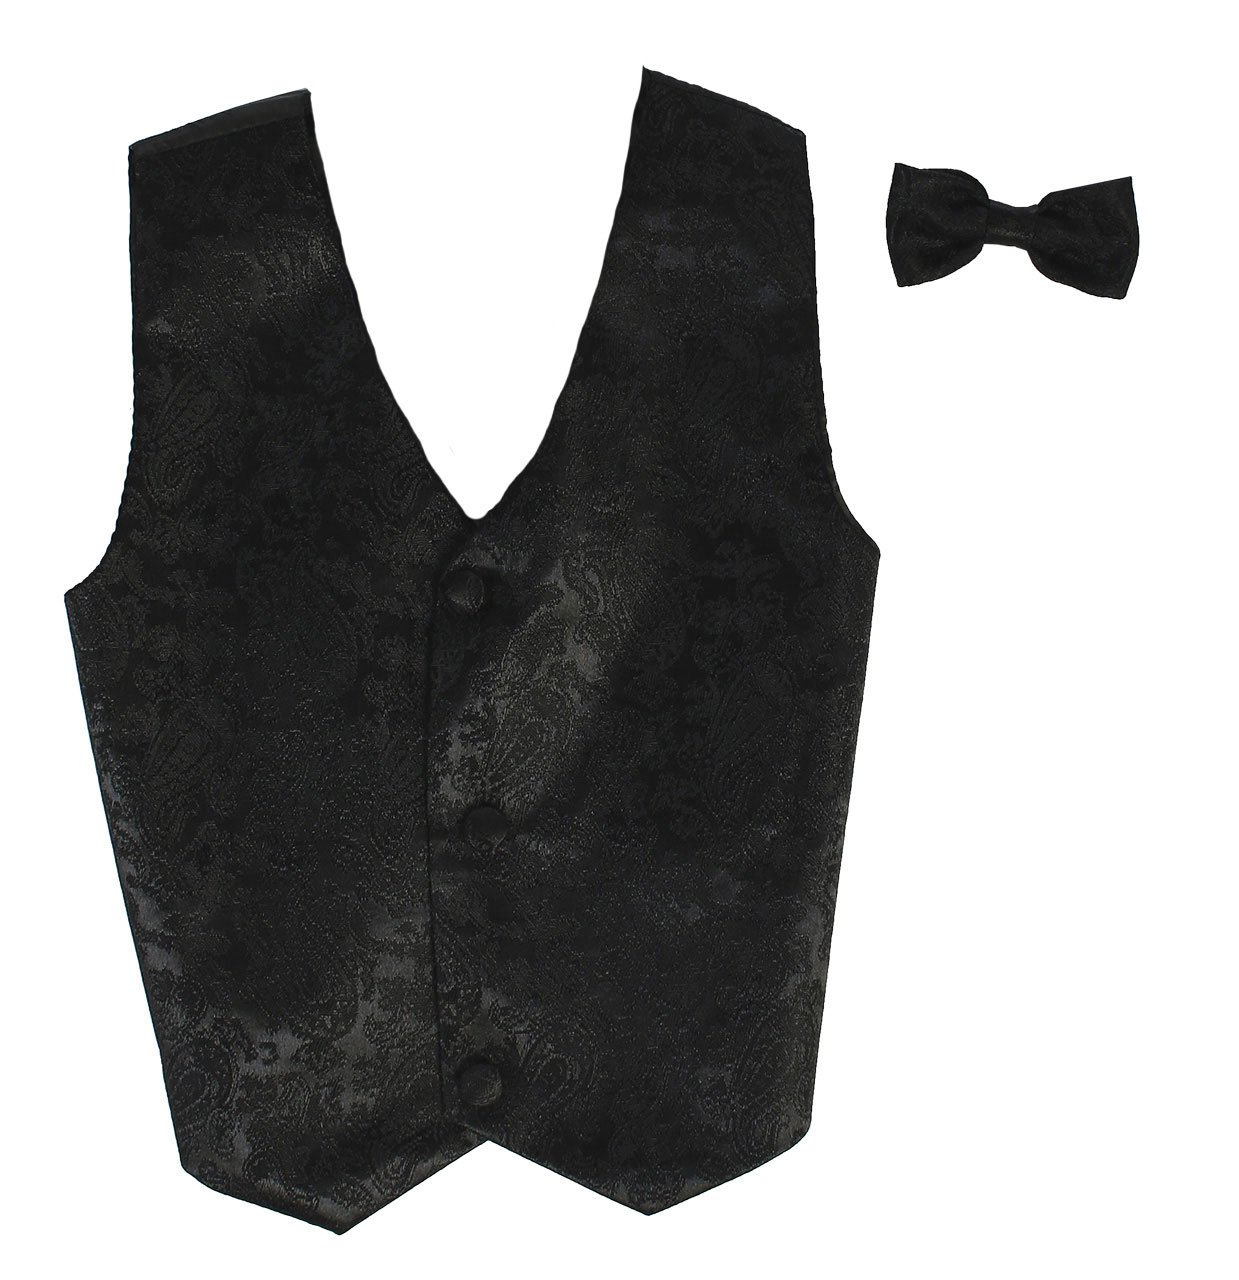 Vest and Clip On Boy Bowtie set - BLACK PAISLEY - Old Style - S/M